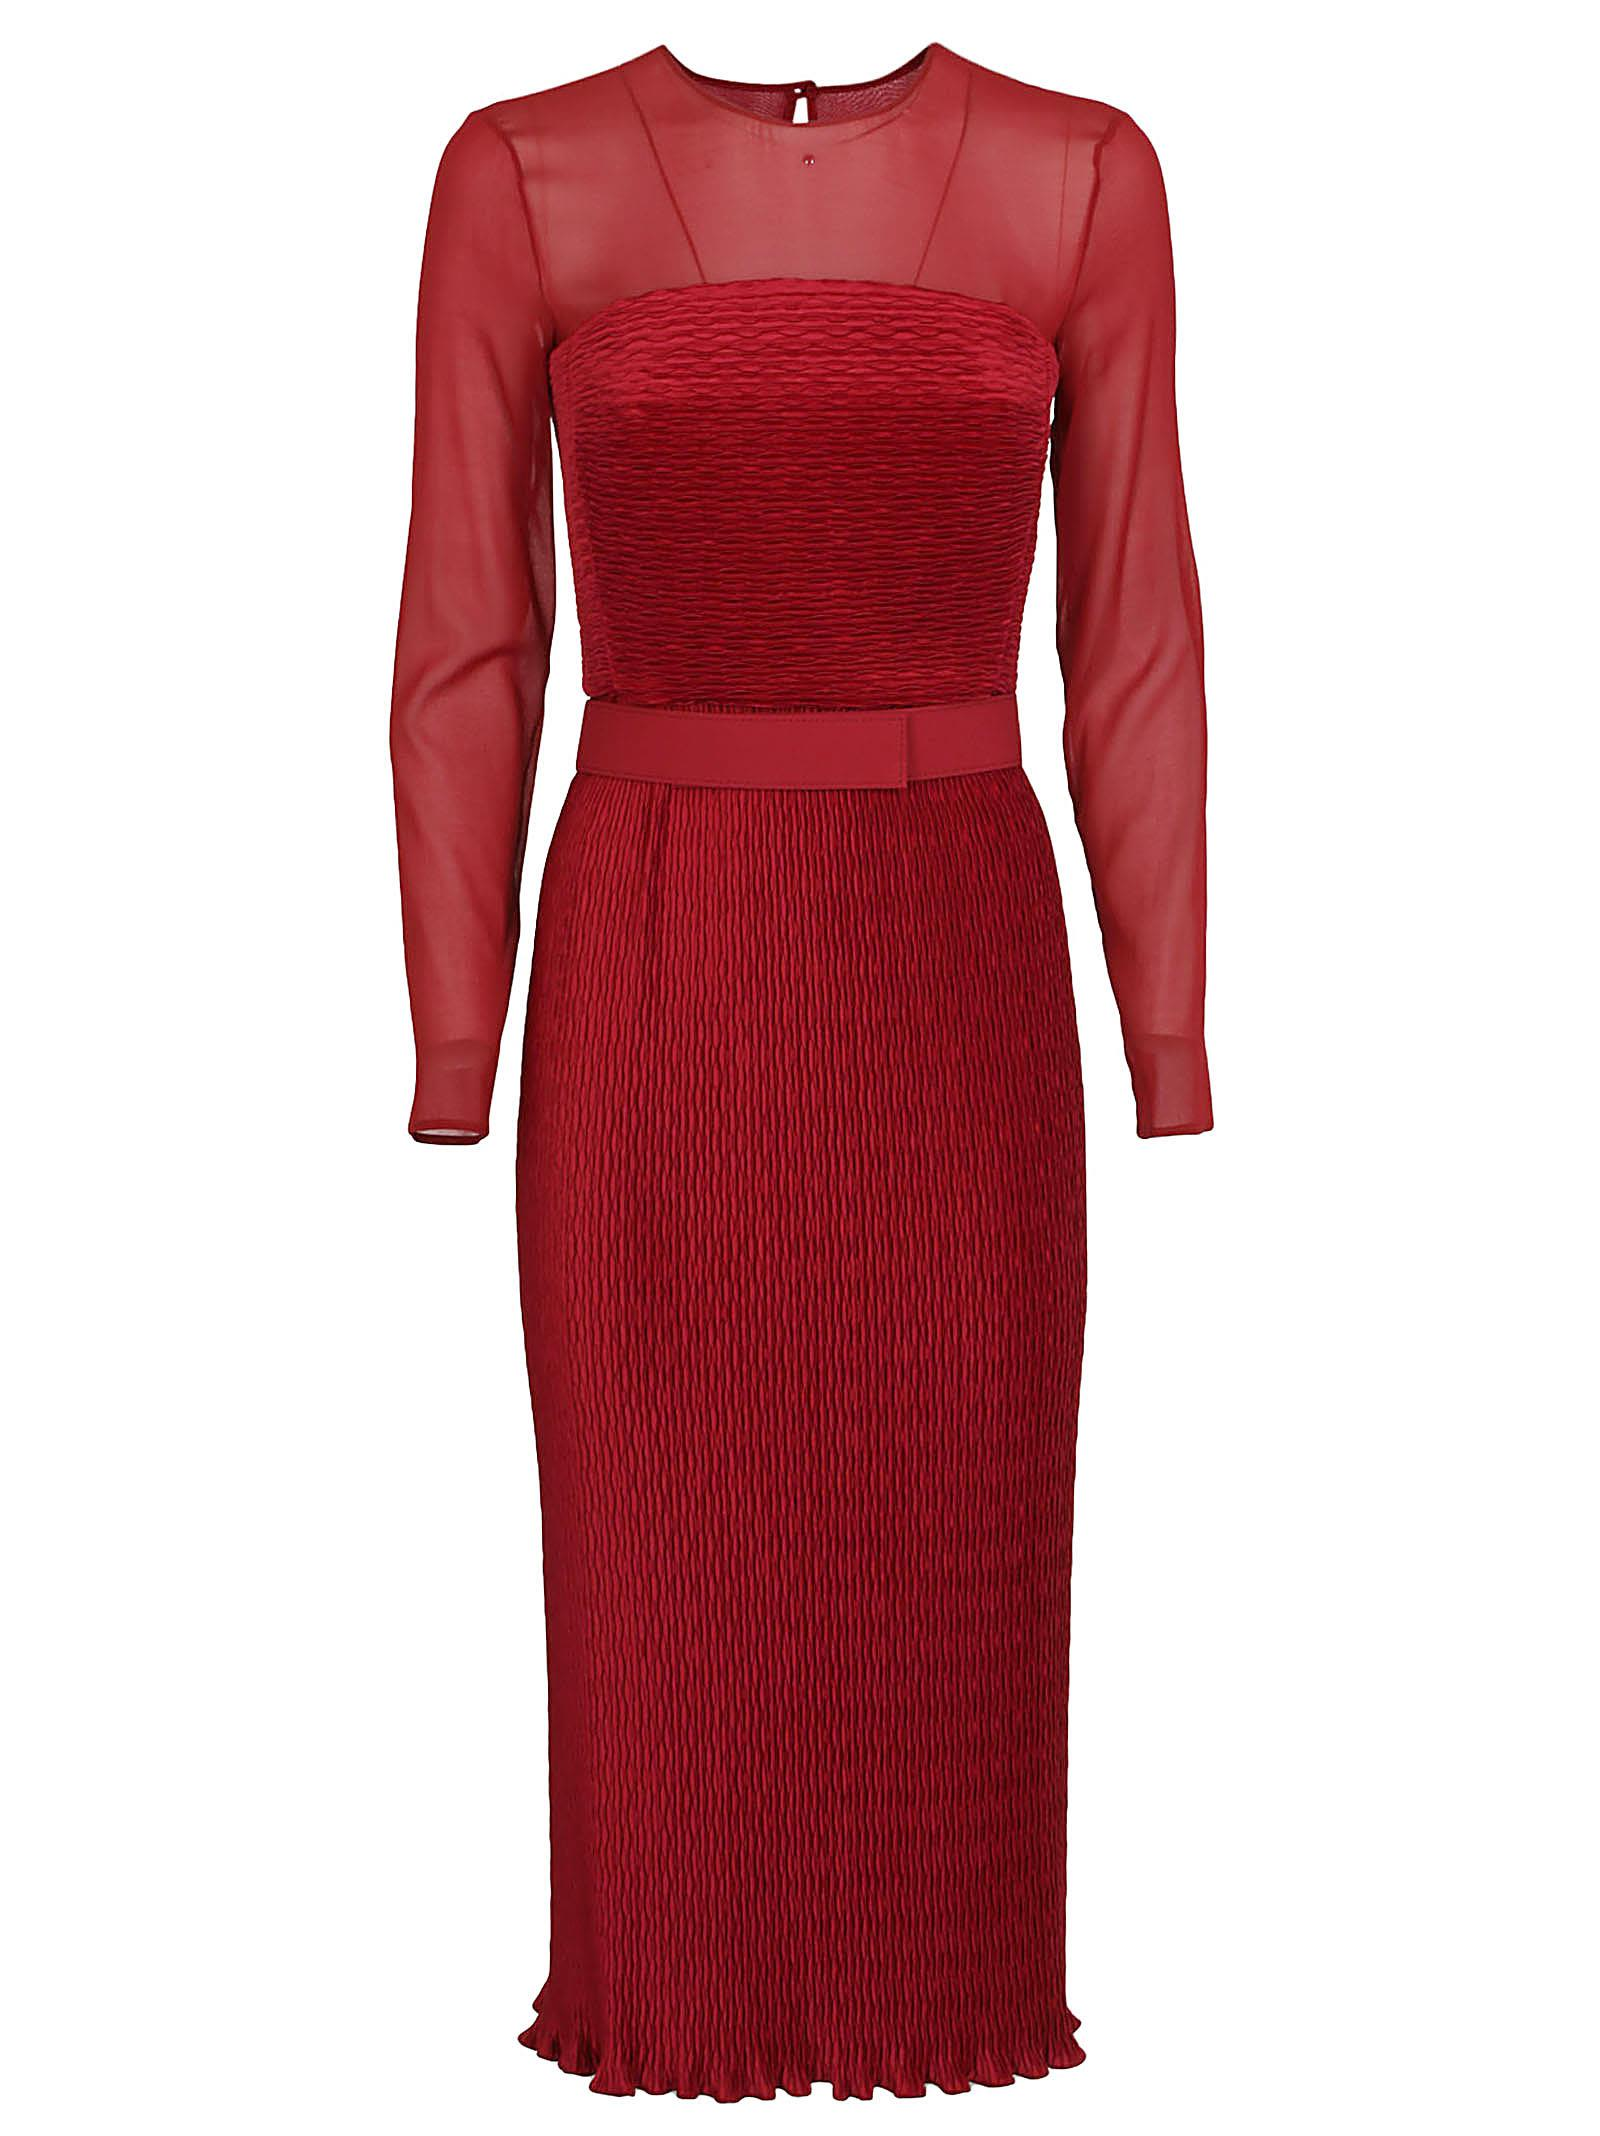 3f9219829e8 Max Mara Max Mara Elegante Belted Knit Dress - Red - 10819041